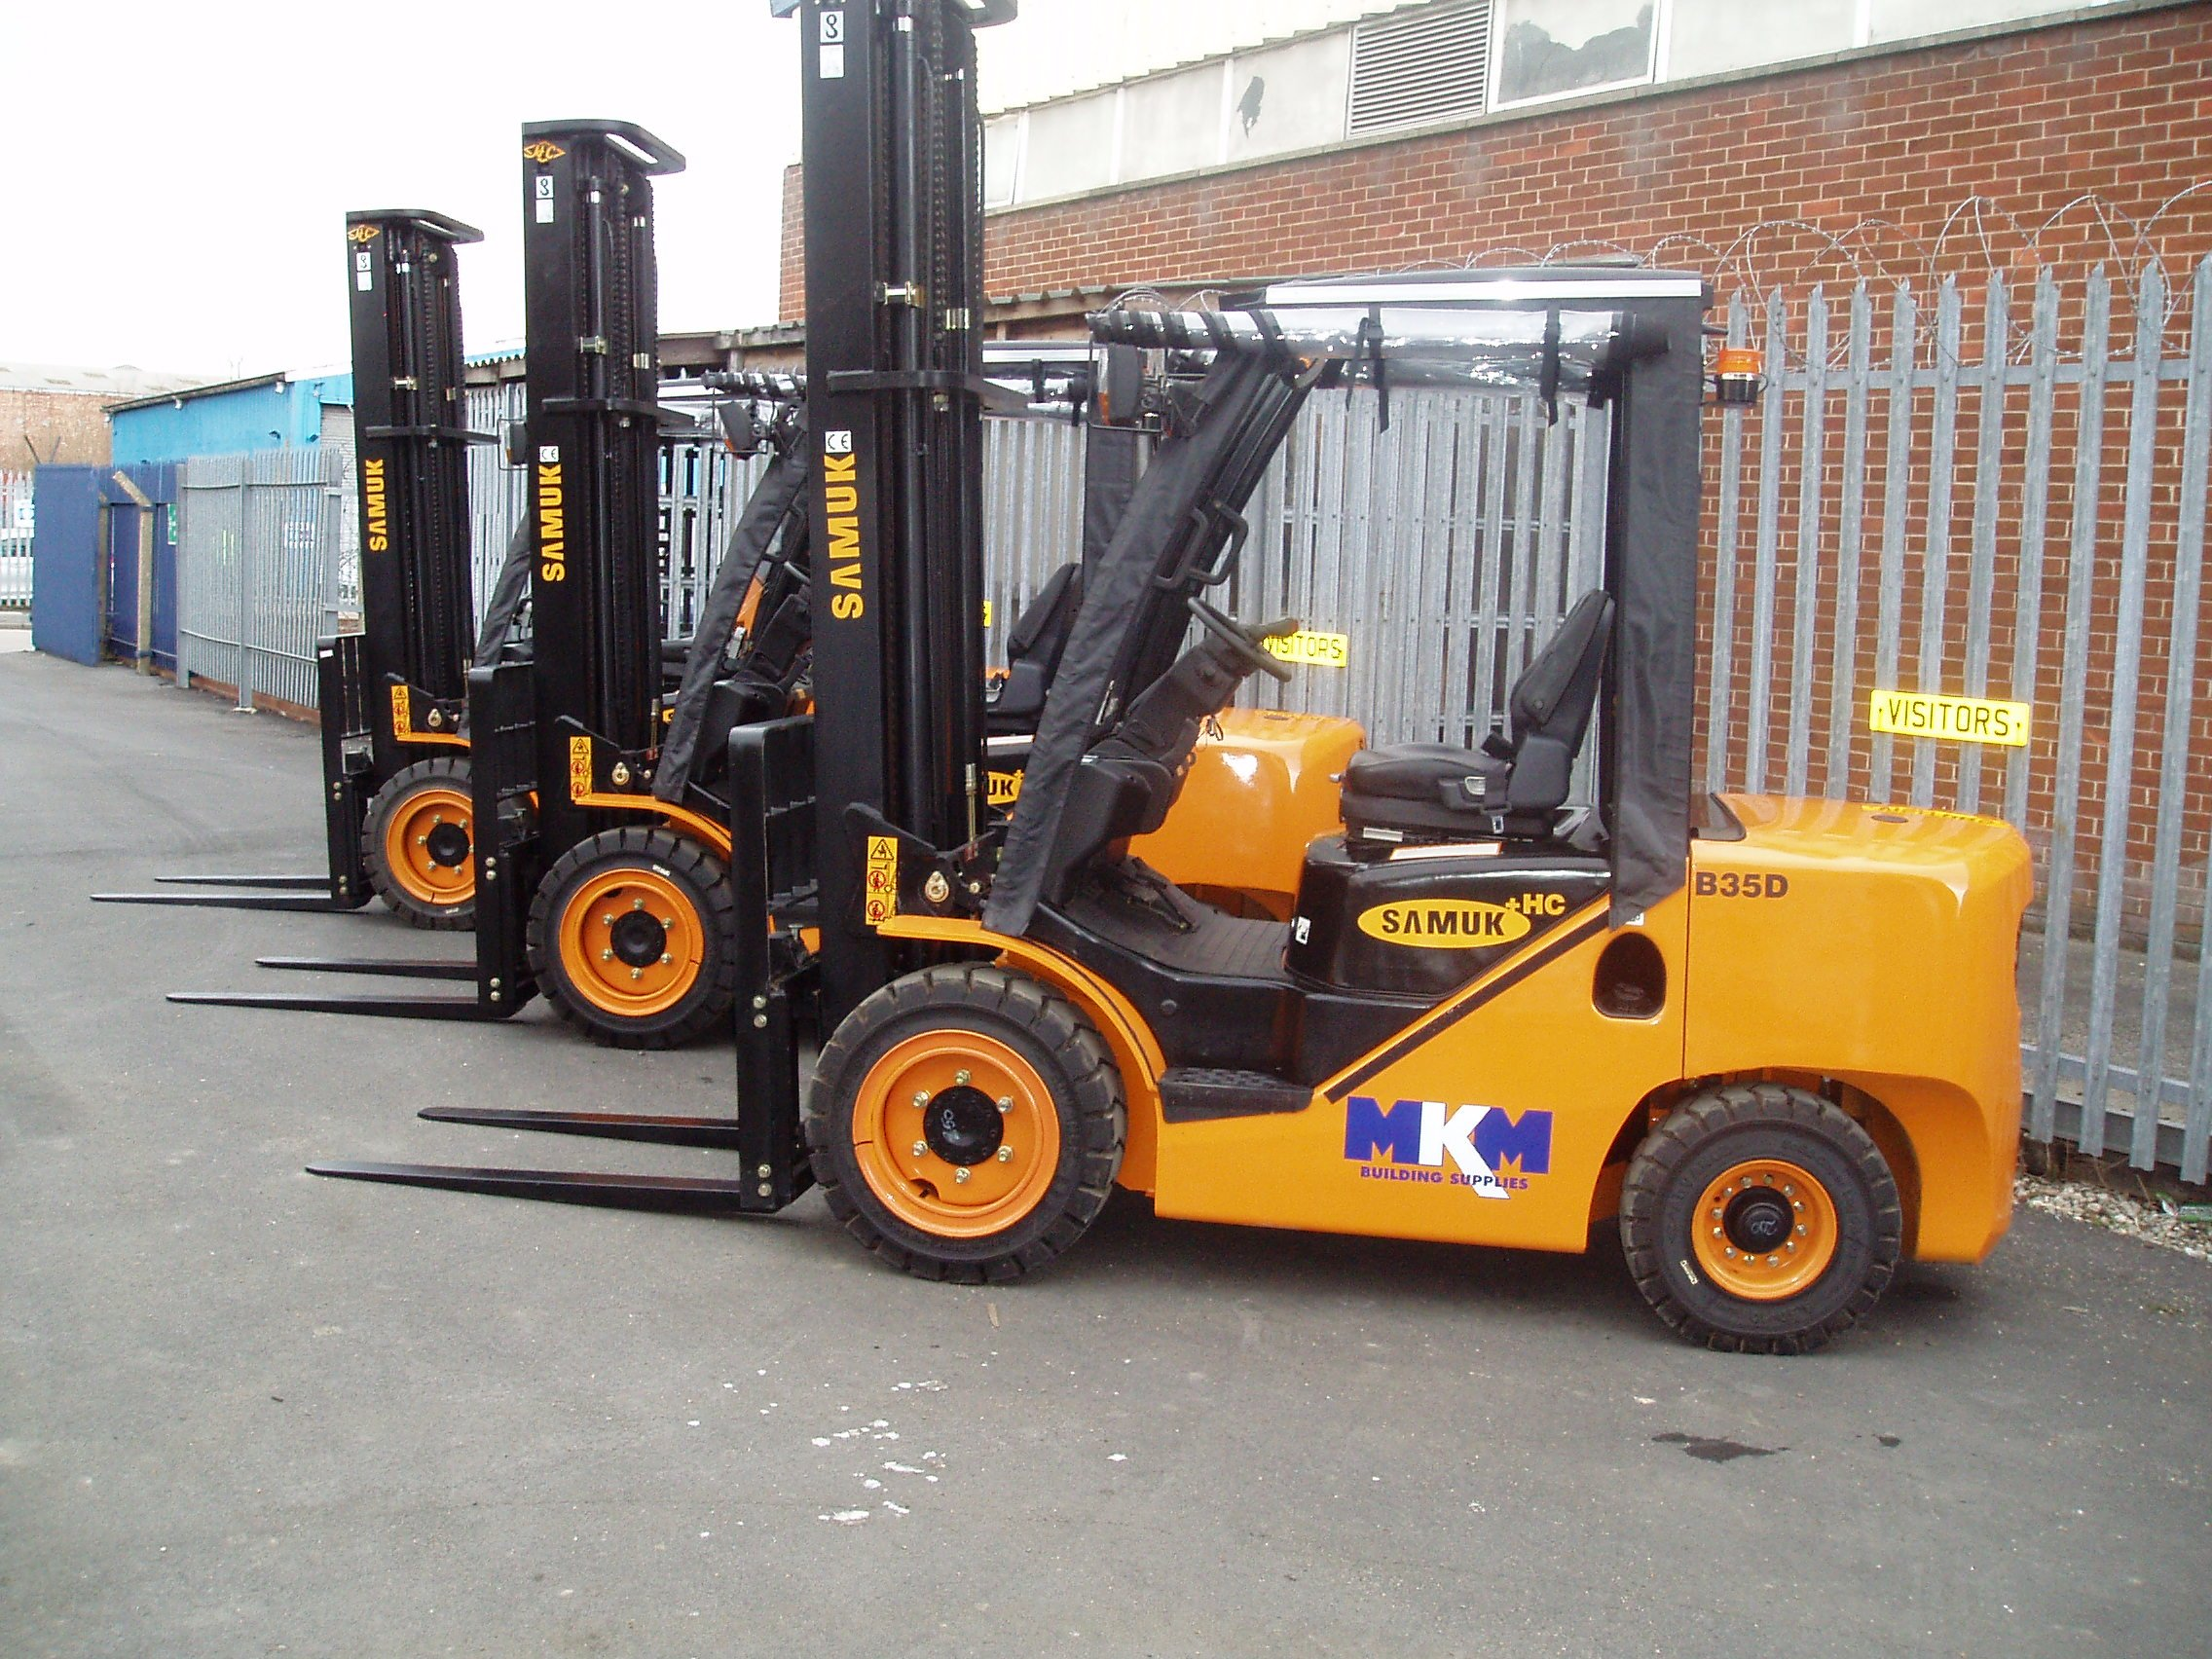 yellow forklifts parked